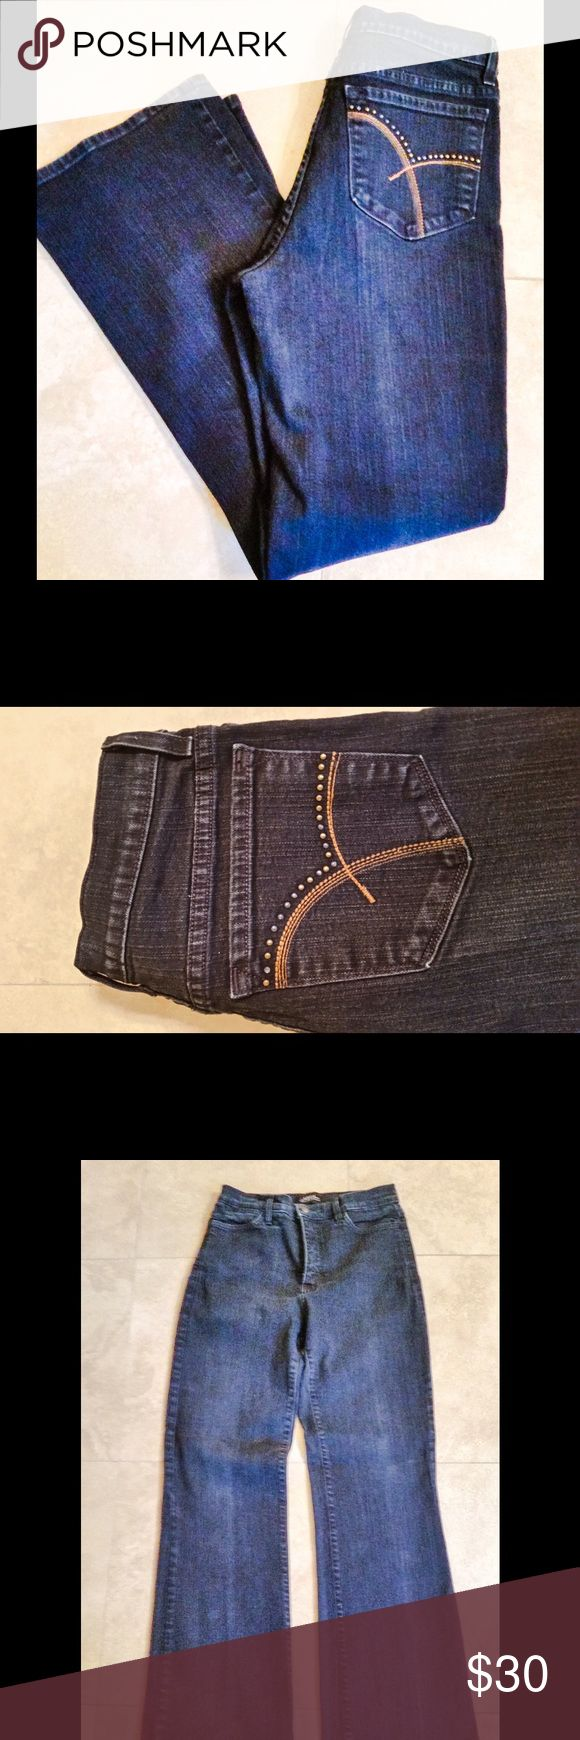 """NYDJ Bootcut Jeans NYDJ boot cut with embellished pocket. Tummy tuck design to make you look one size smaller. Cut# 700G2, Style# 11165B. Inseam is 32"""". Excellent condition! NYDJ Jeans Boot Cut"""